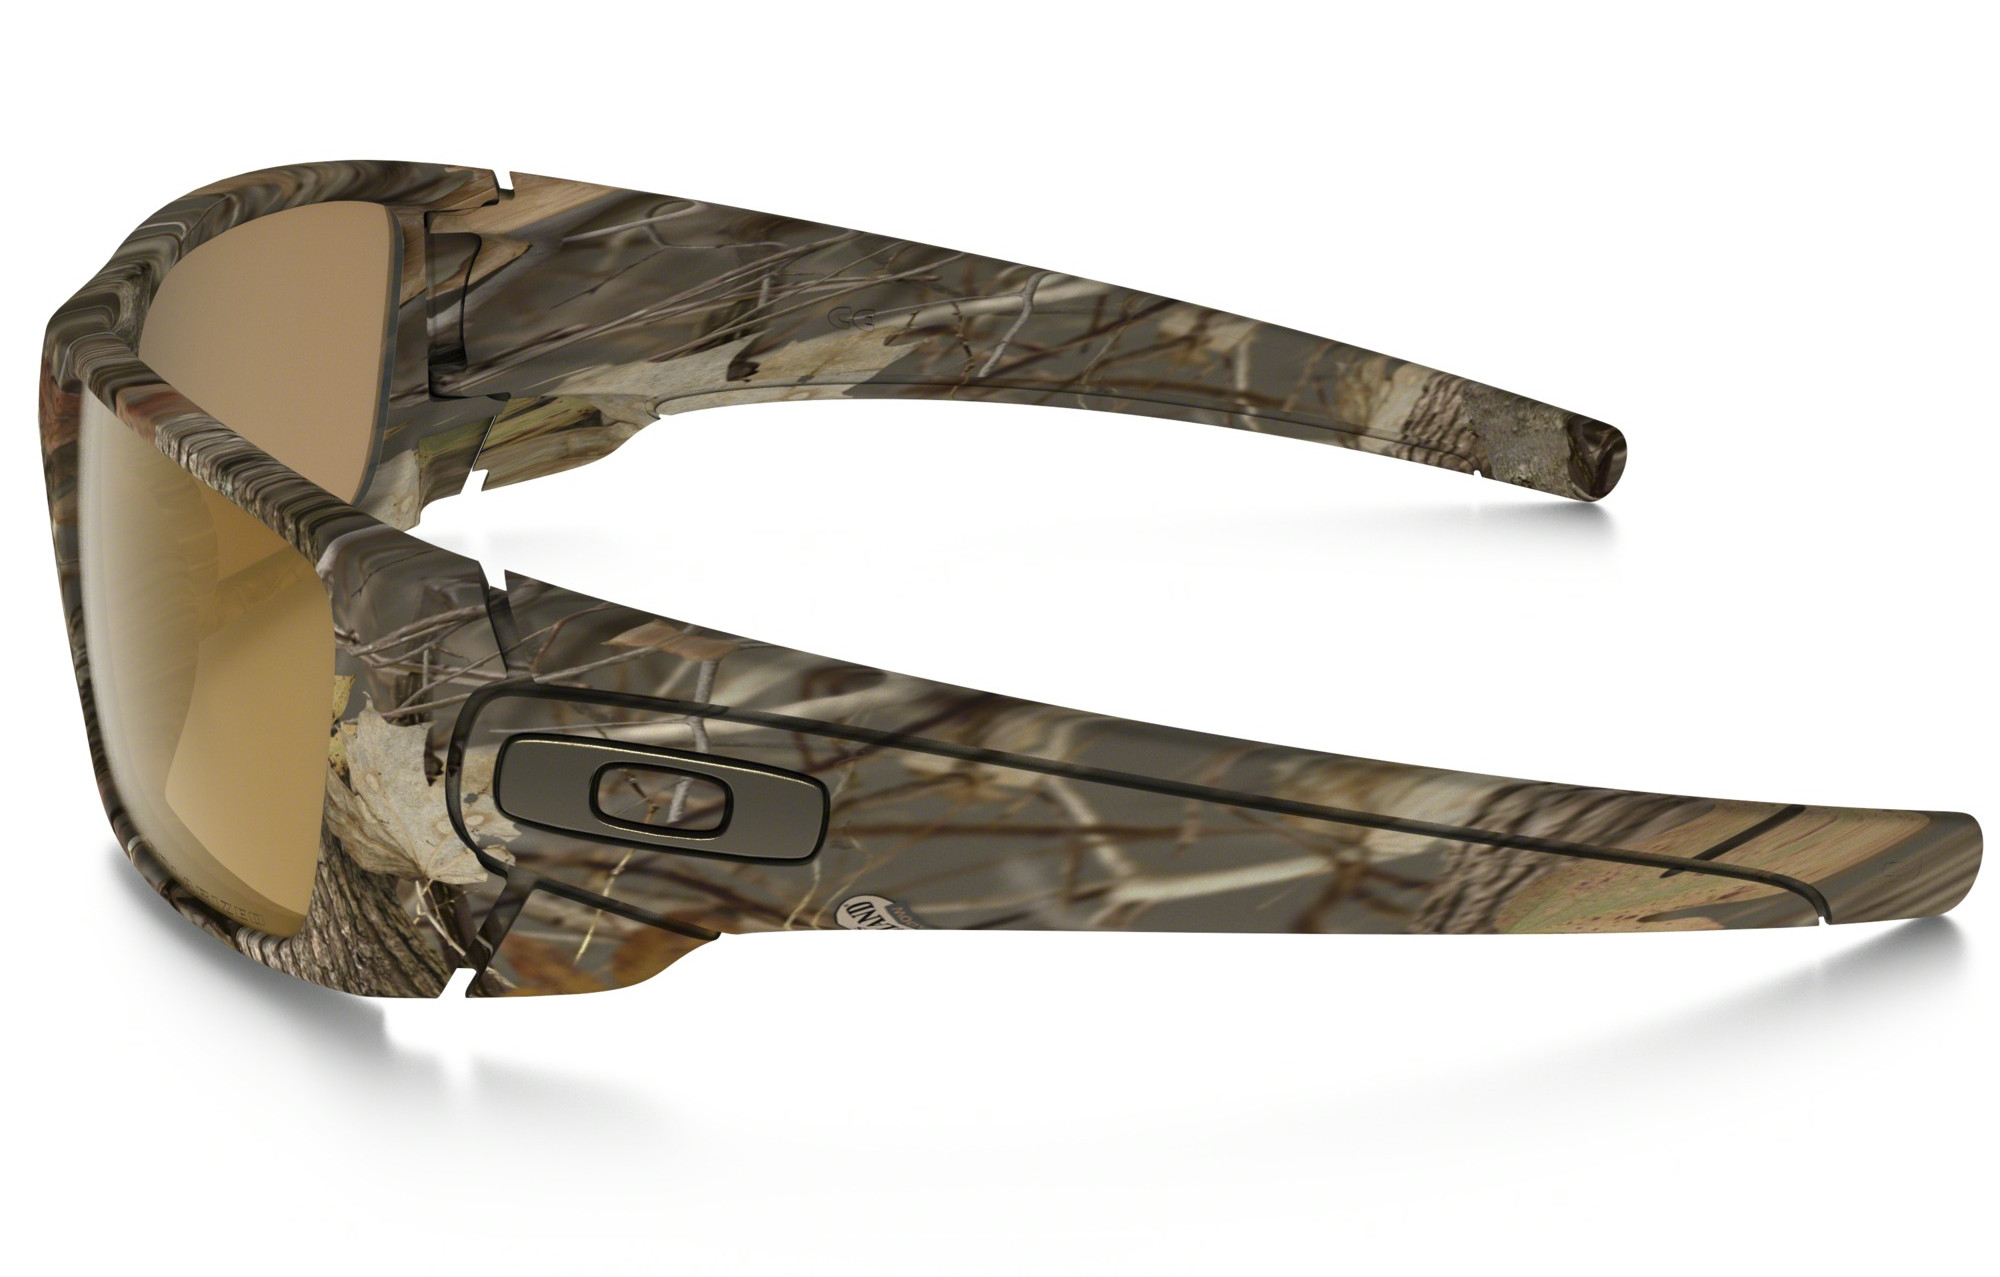 cea36d42b0 OAKLEY FUEL CELL Sunglasses Camo - Brown Polarized Ref OO9096-D9 ...